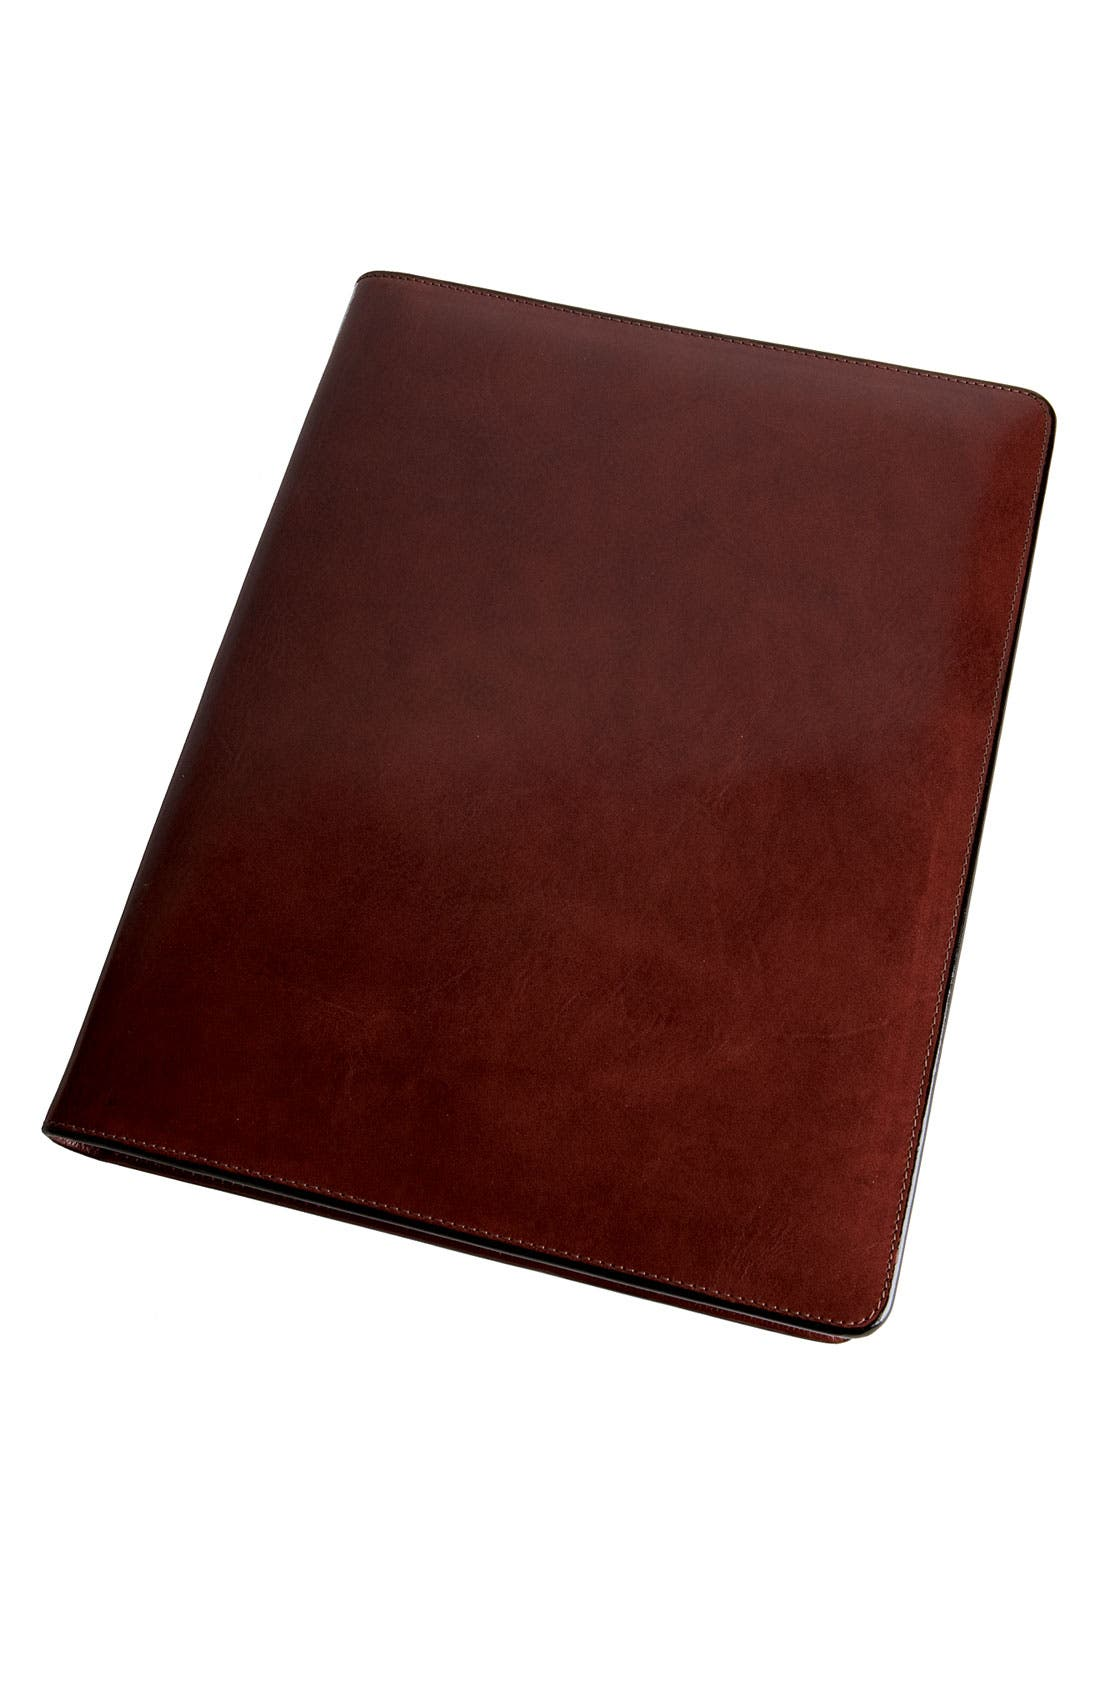 Bosca Leather Letter Pad Cover